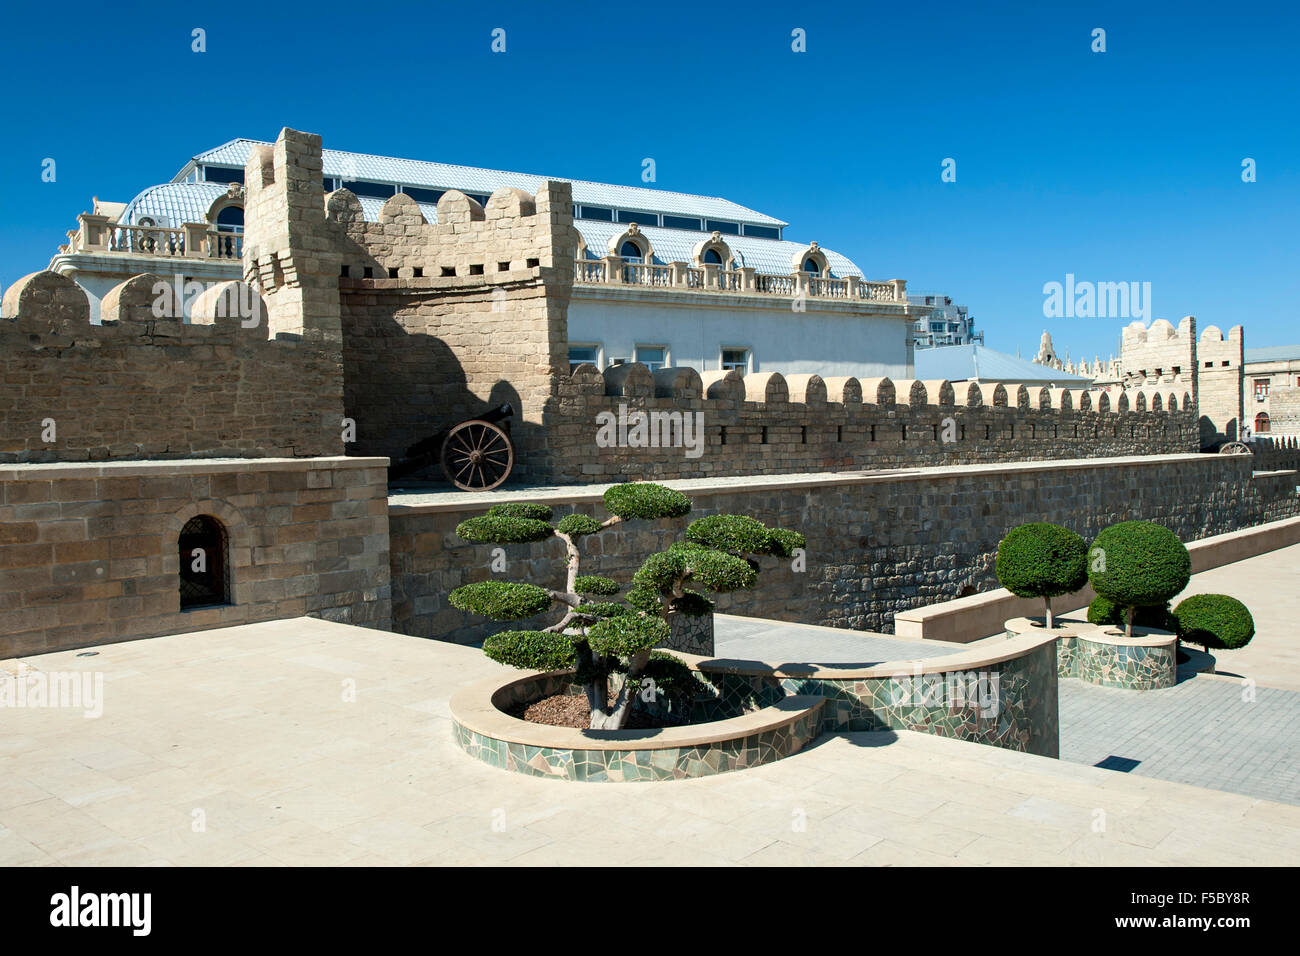 The medieval walls of the Old Town (İcheri Sheher) in Baku, capital of Azerbaijan. - Stock Image